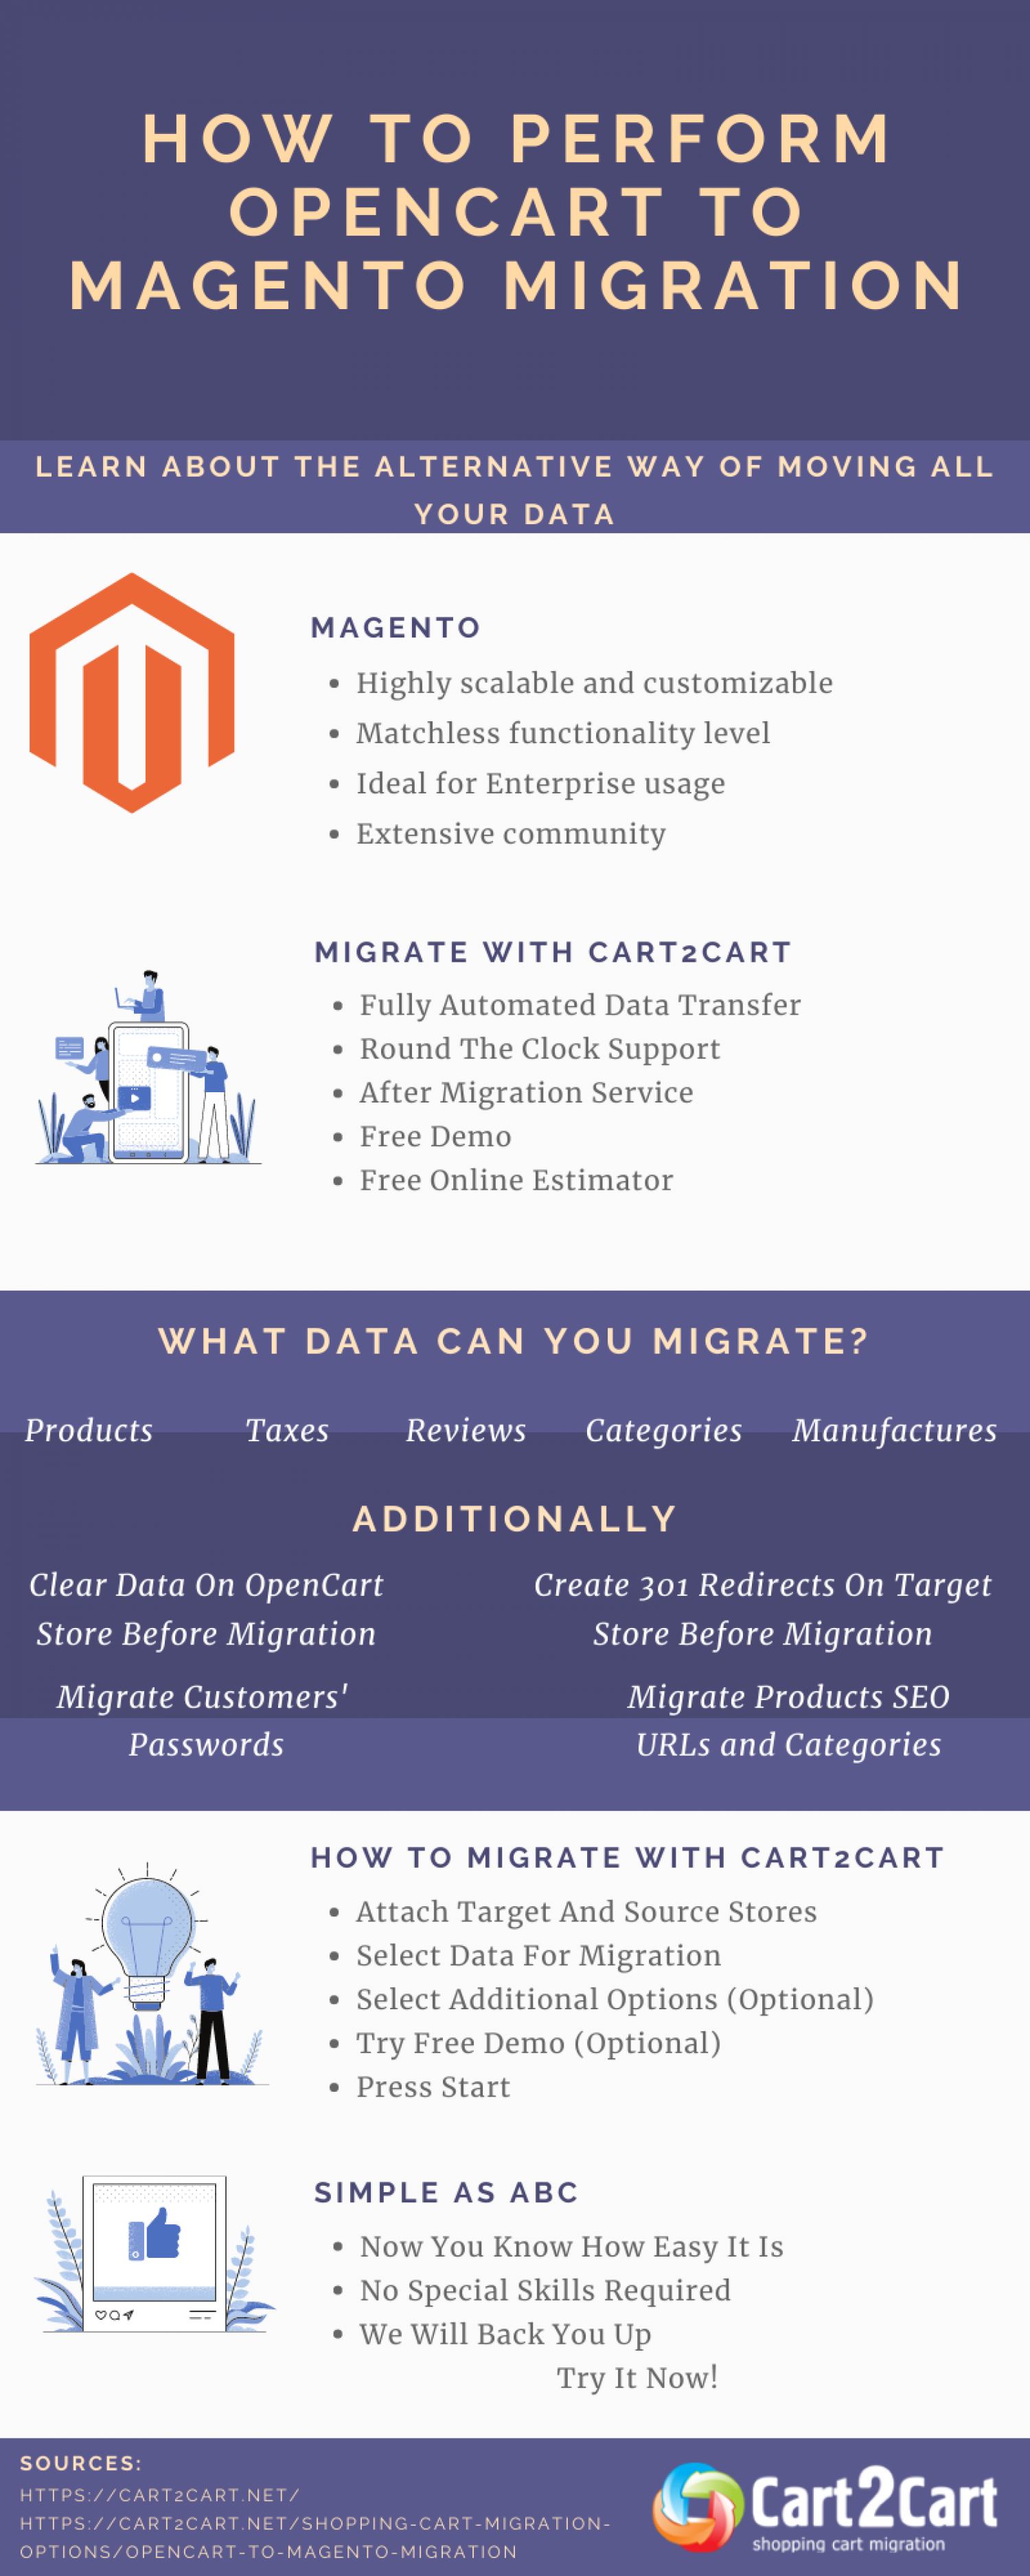 How To Perform OpenCart To Magento Migration Infographic